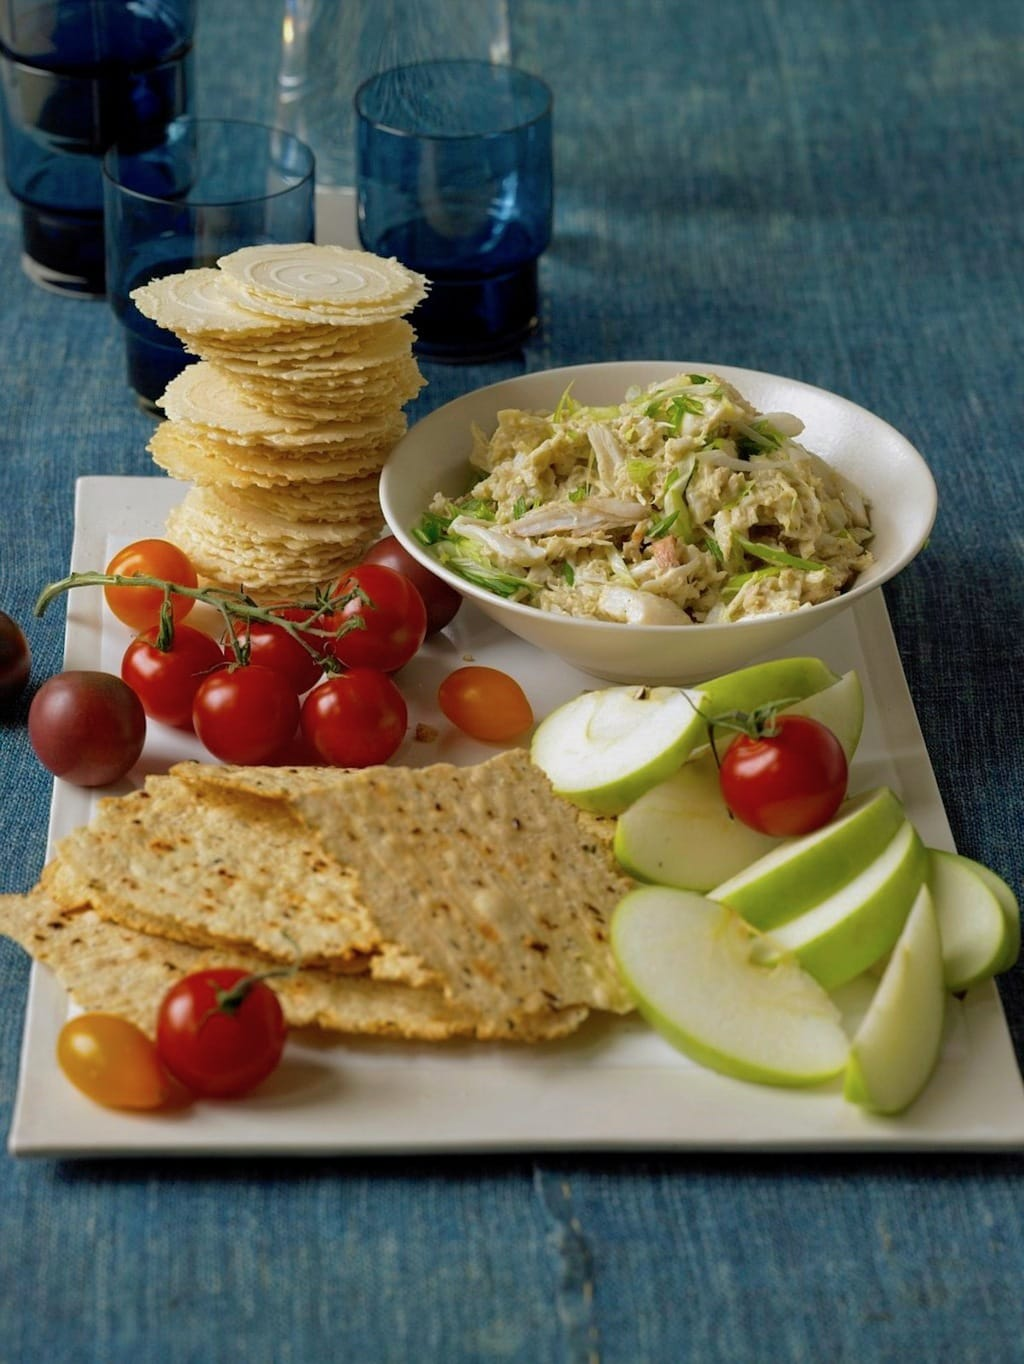 Crab dip with crackers, veggies, fruit on white tray